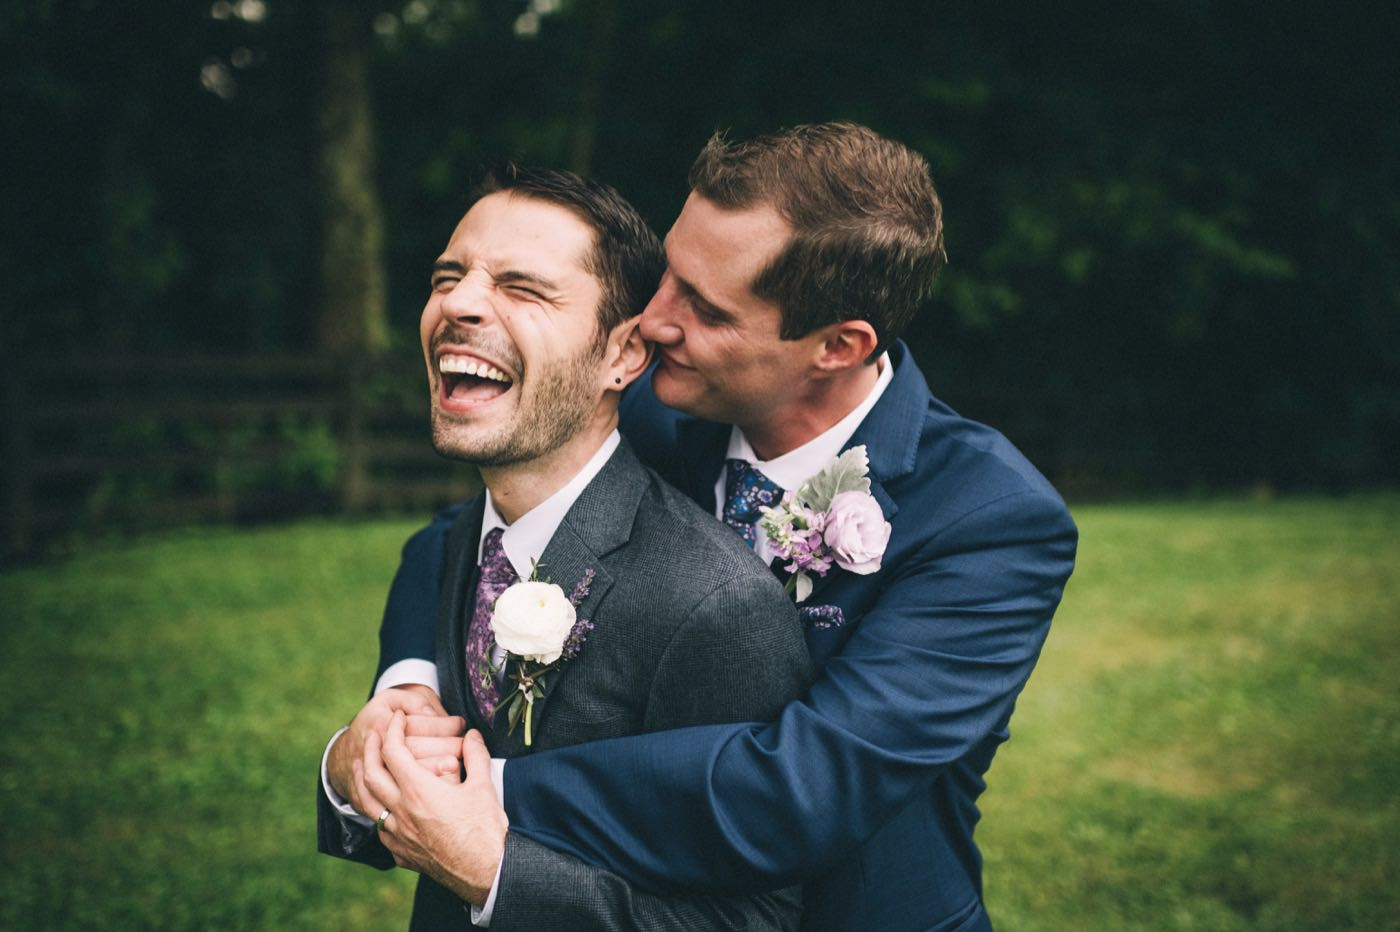 Will-Nate-Louisville-LGBTQ-Pride-Month-Kentucky-Wedding-By-Sarah-Katherine-Davis-Photograpy0012.JPG